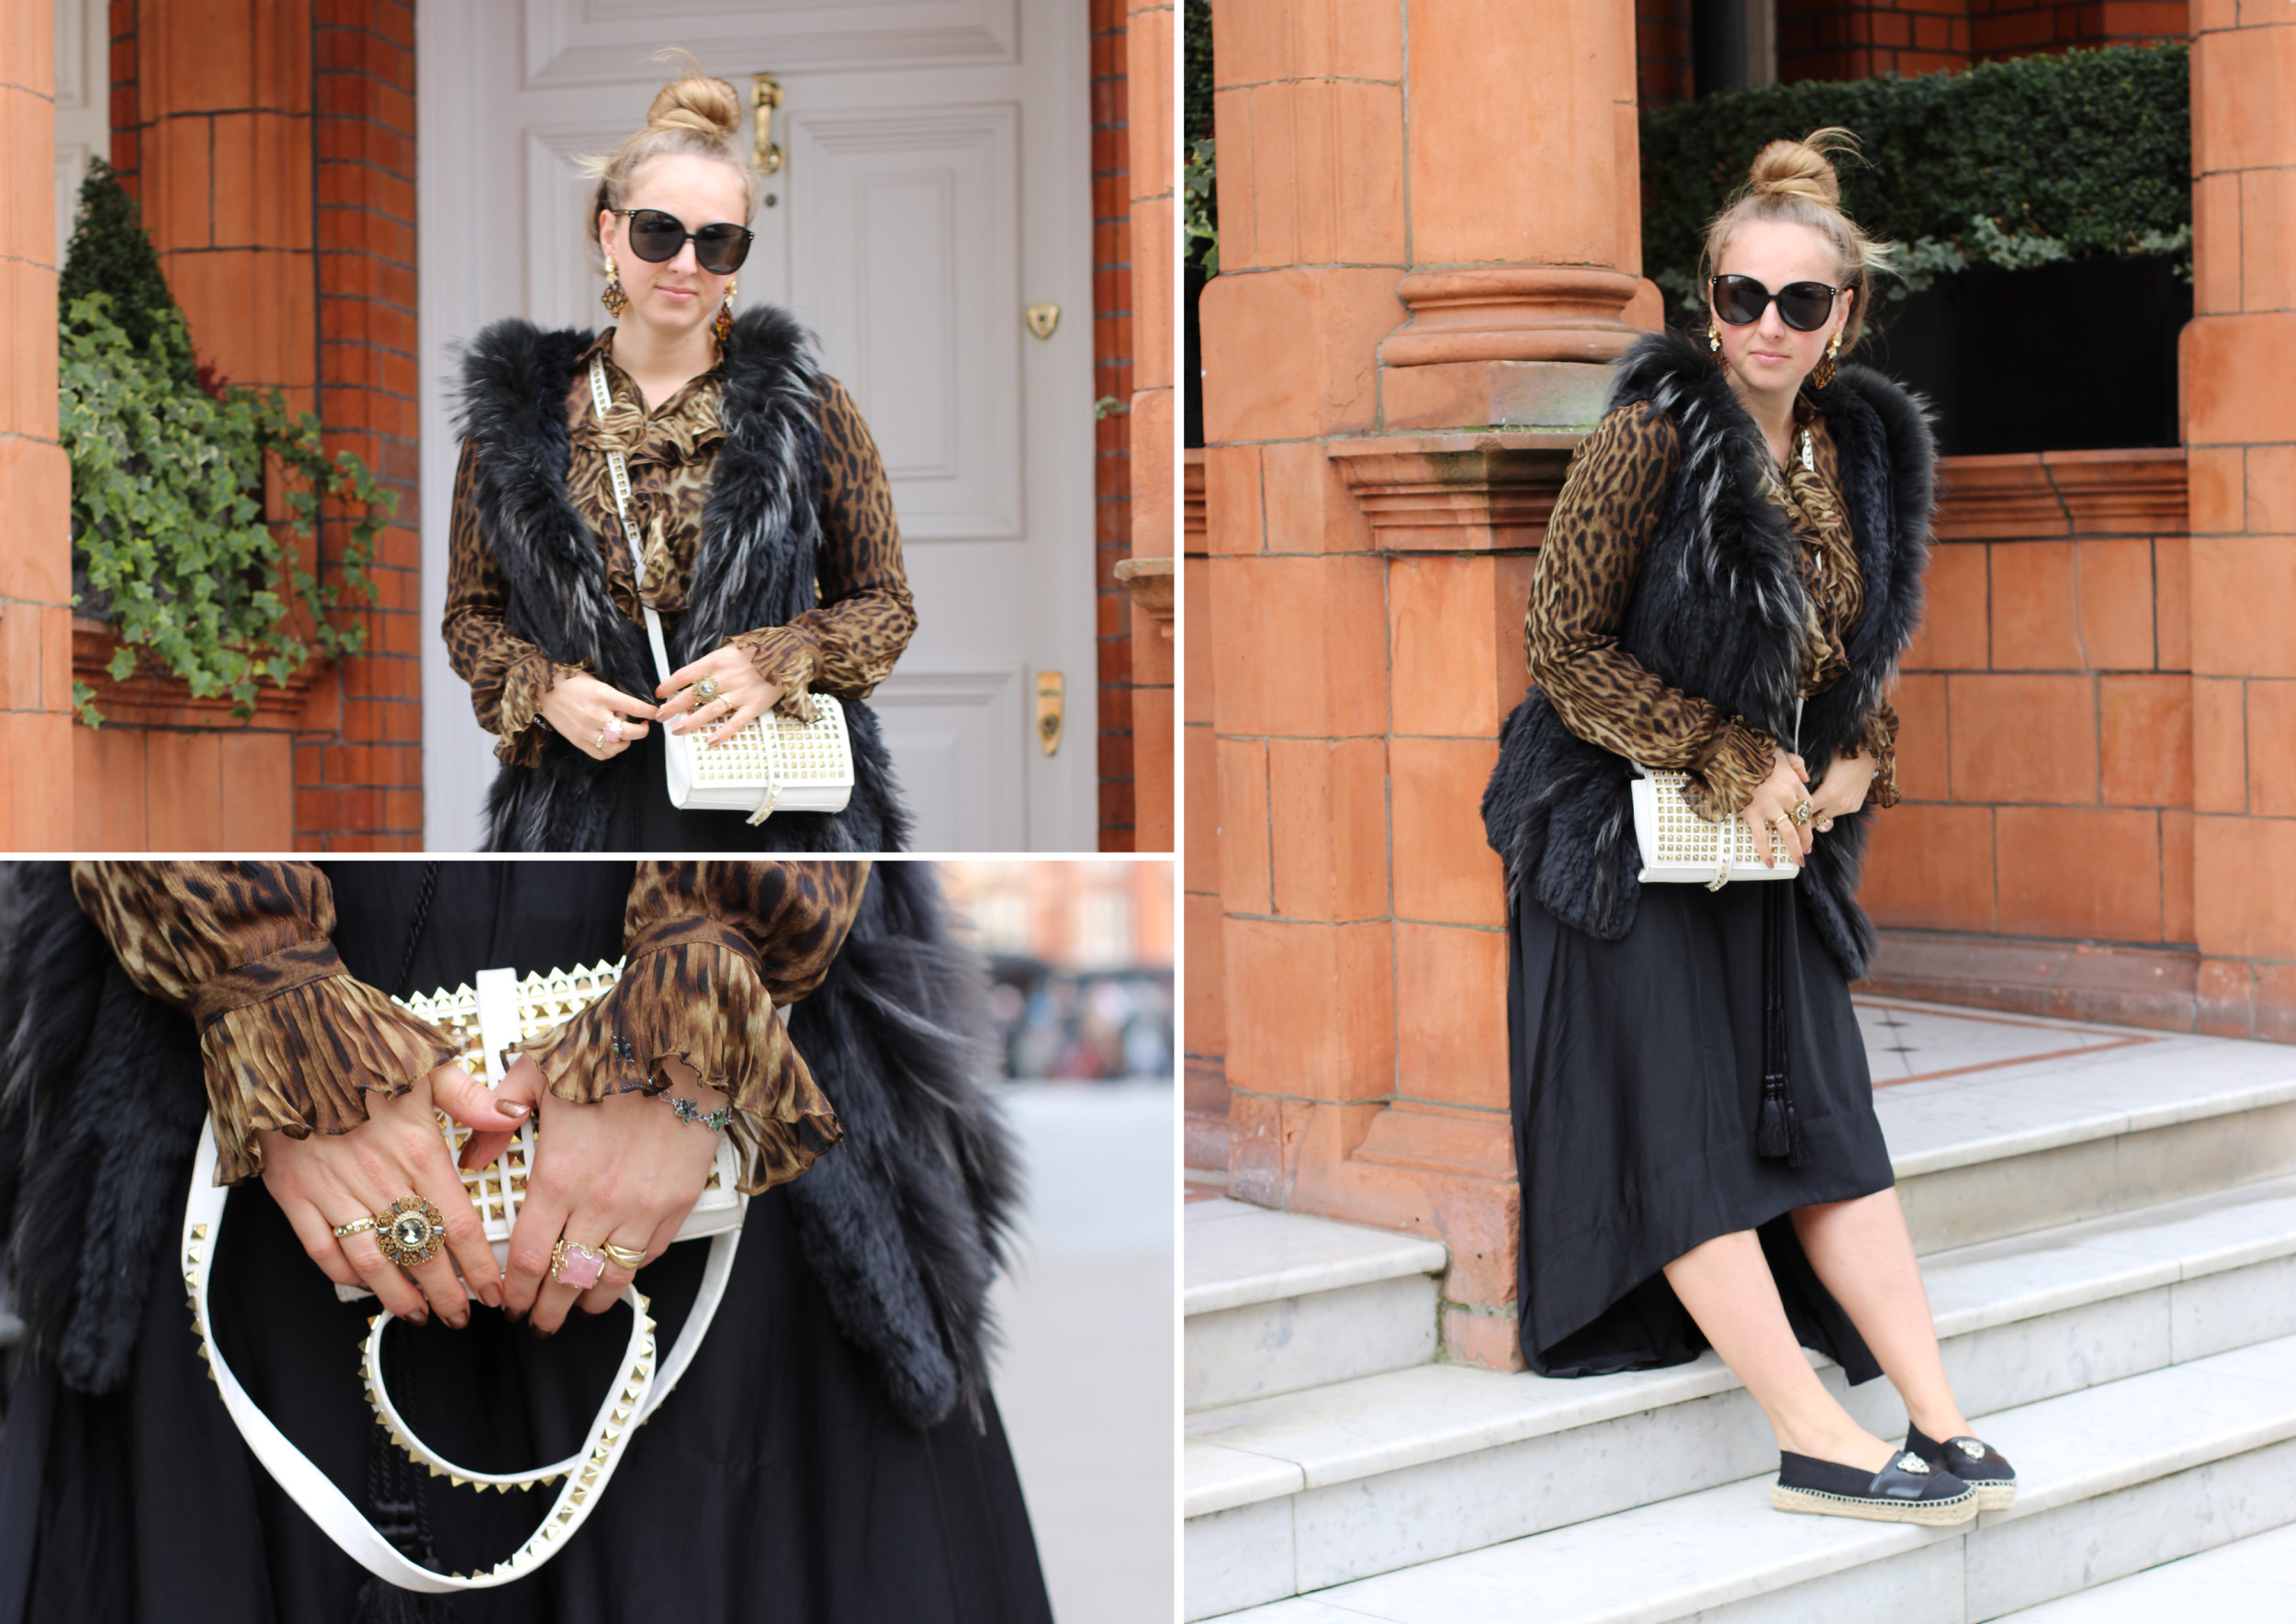 Vanessa Fur Leo Outfit 2